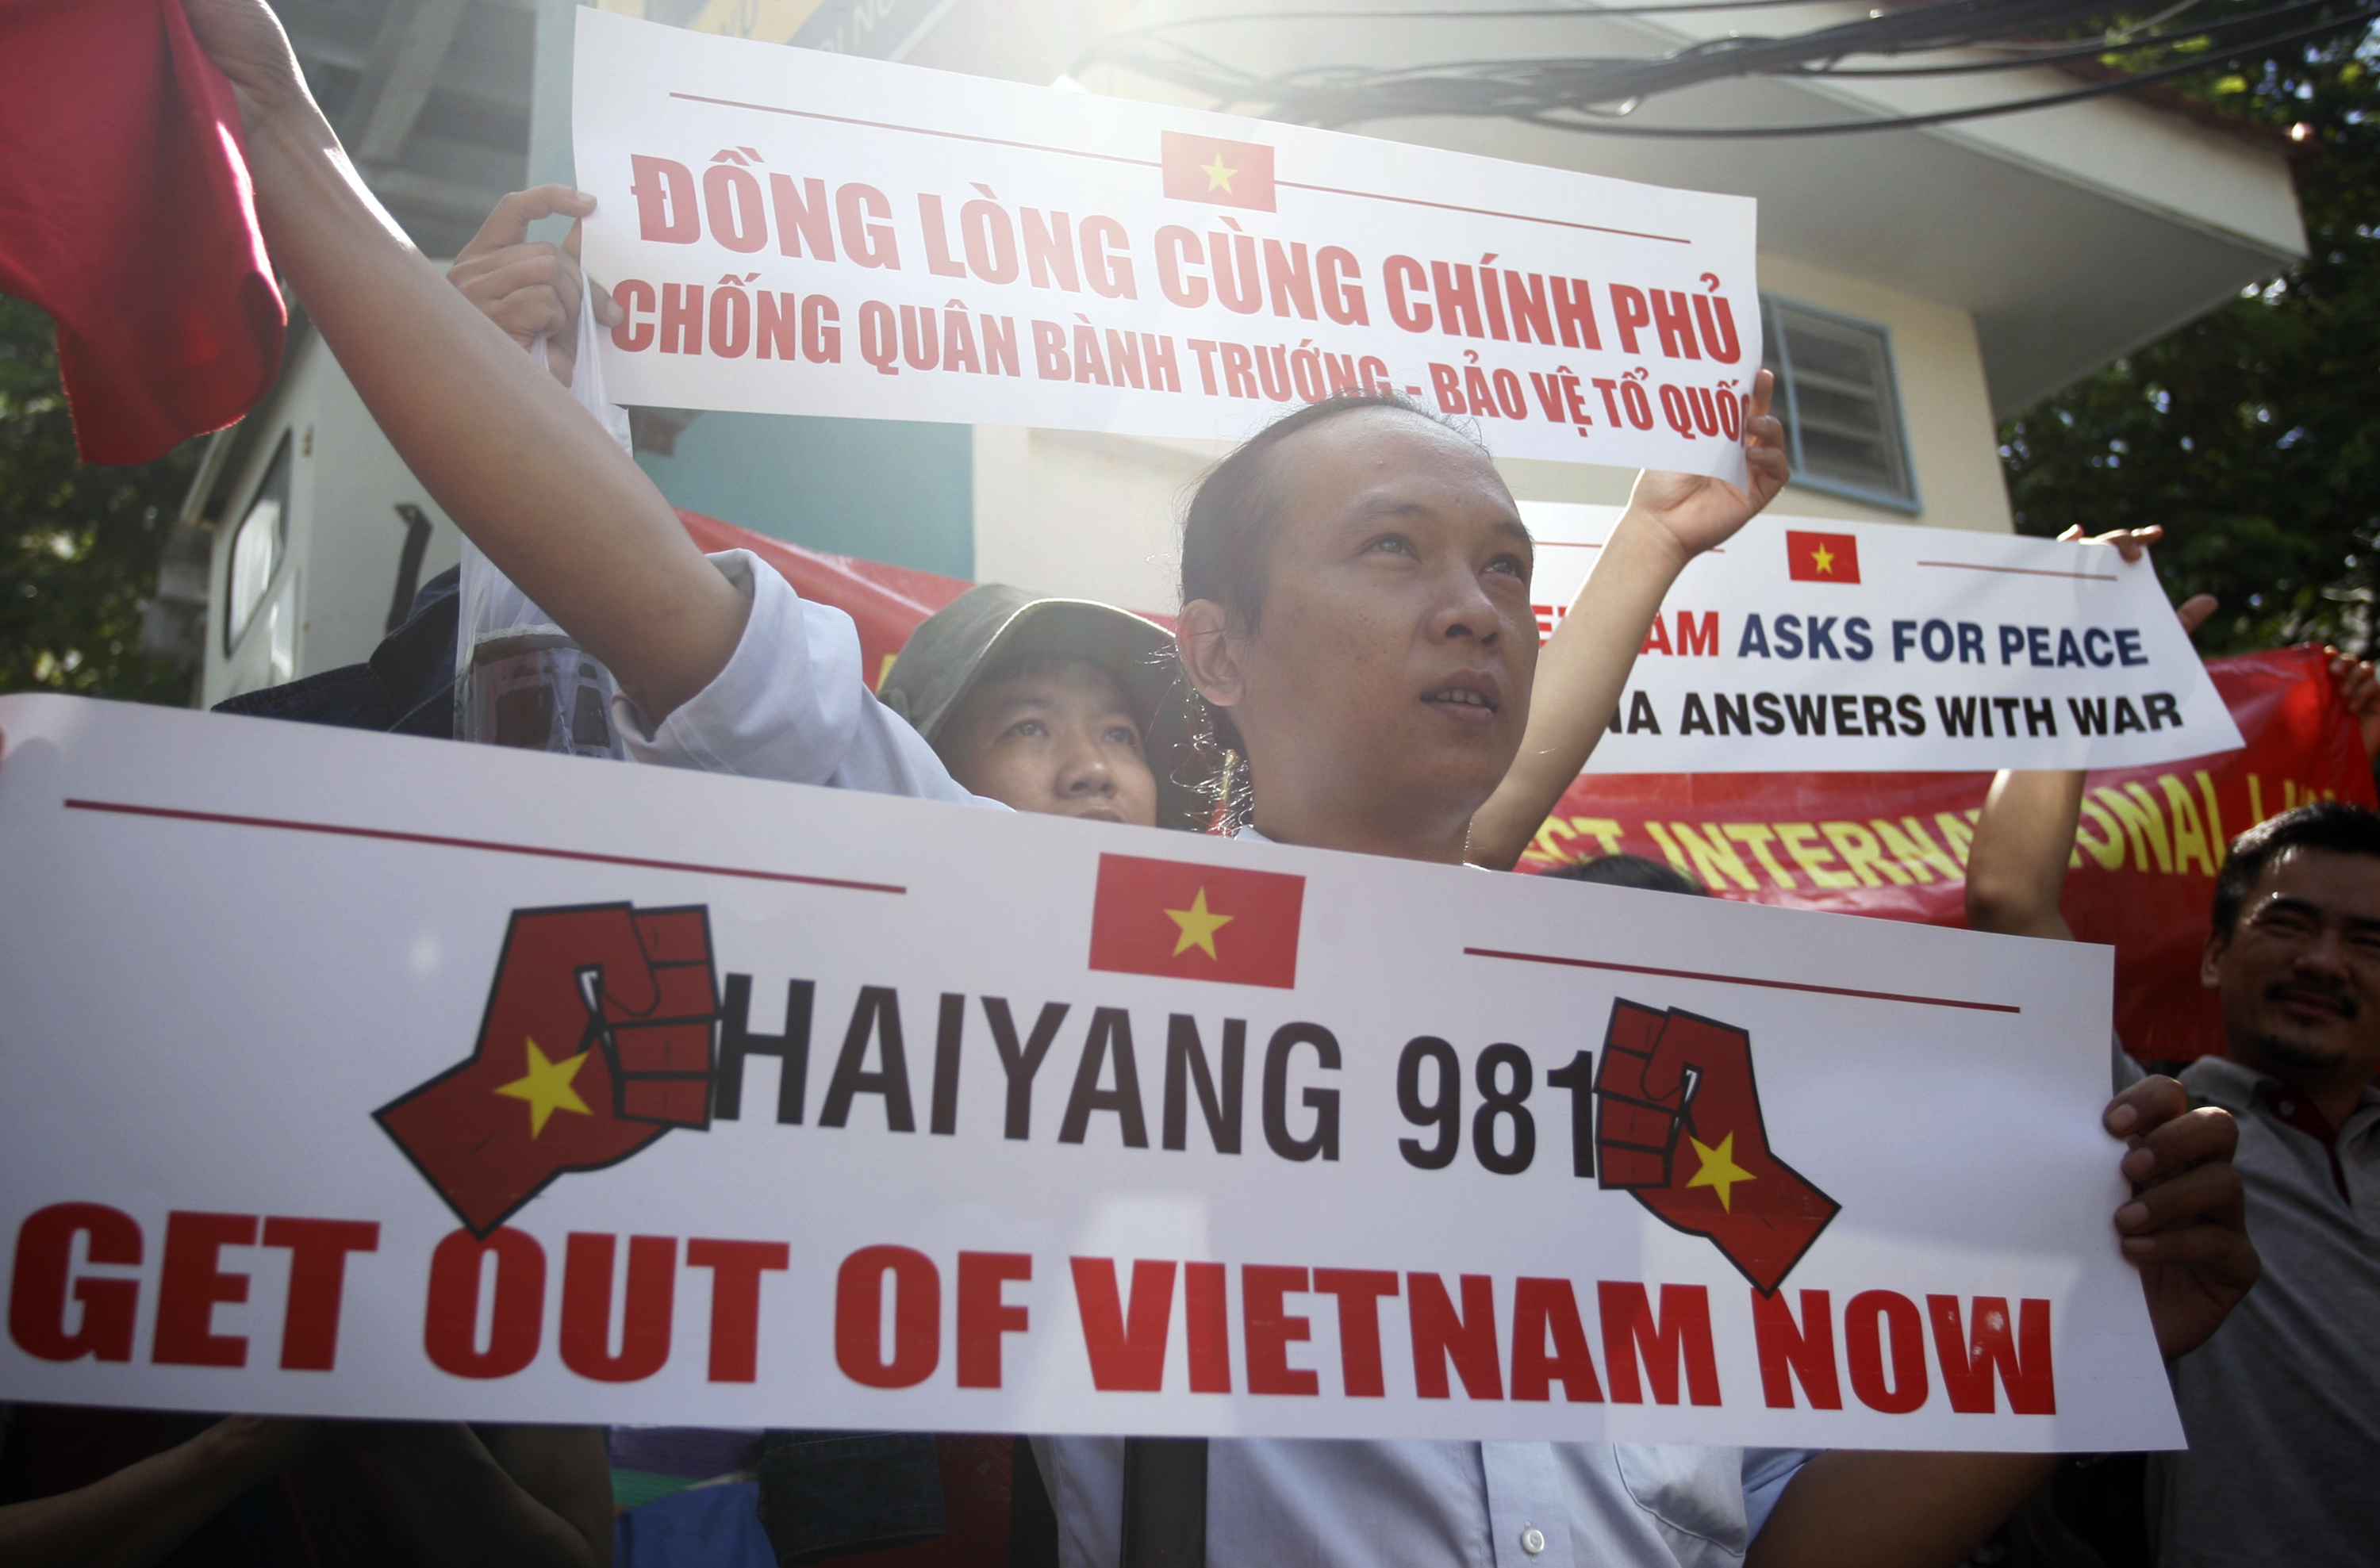 Vietnamese protest against China's deployment of an oil rig in the disputed South China Sea in front of the Chinese Consulate in Ho Chi Minh City on Saturday, May 10, 2014.